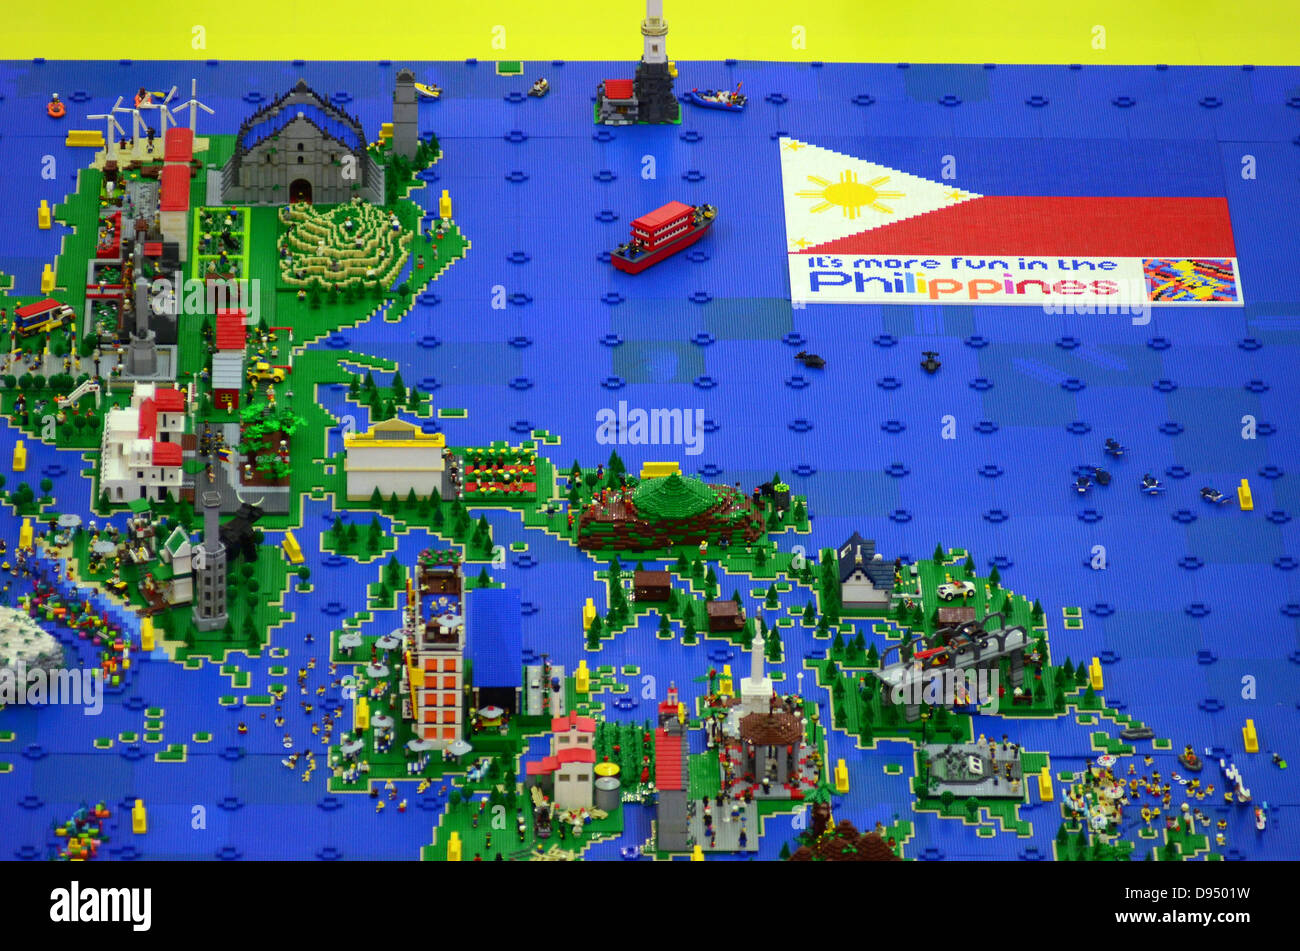 Davao city philippines 11th june 2013 philippine map and philippine map and landmarks made of 50000 pieces of lego is exhibited in a mall in davao city southern philippines 11 june 2013 gumiabroncs Choice Image